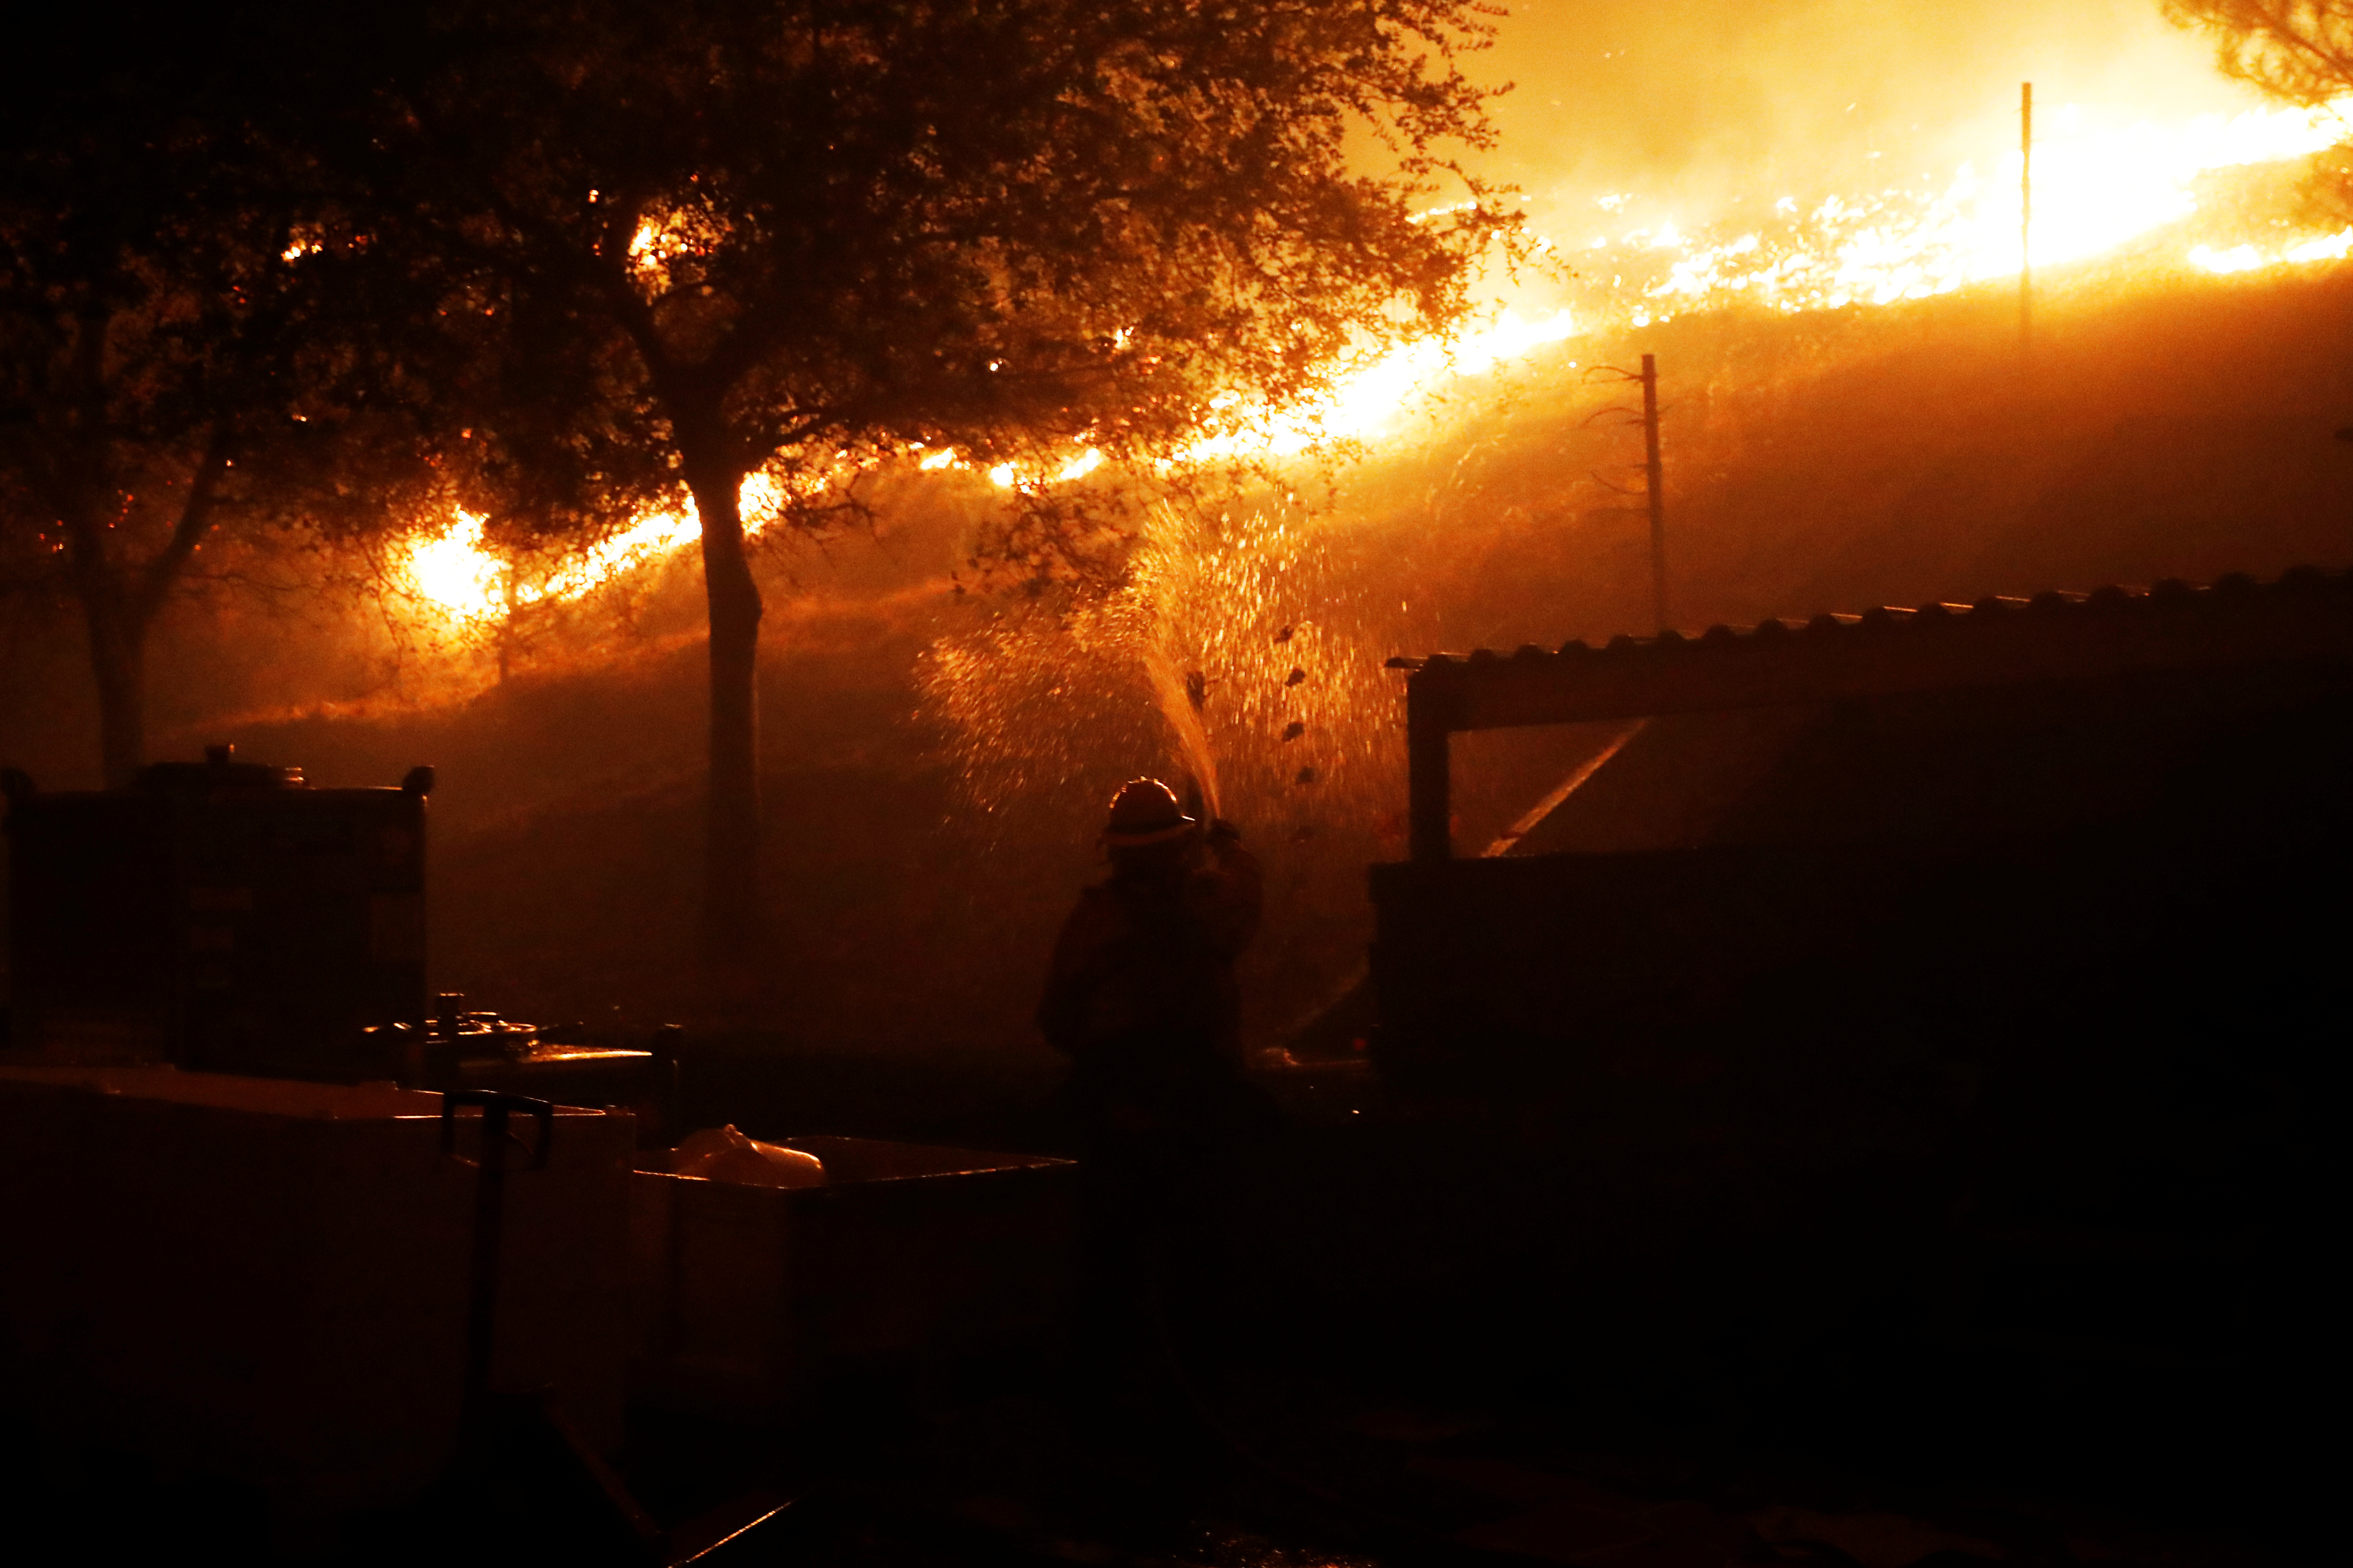 A firefighter defends a structure against approaching flames while in Geyserville.